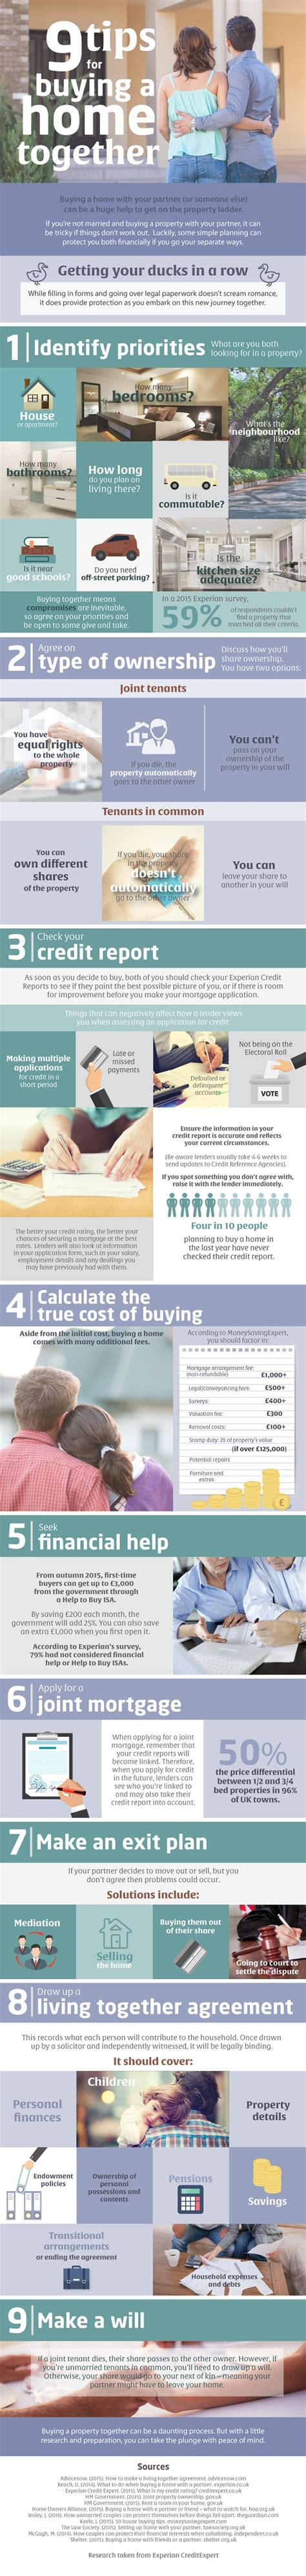 buying a house with a partner infographic important guidelines when buying a house with your partner personal